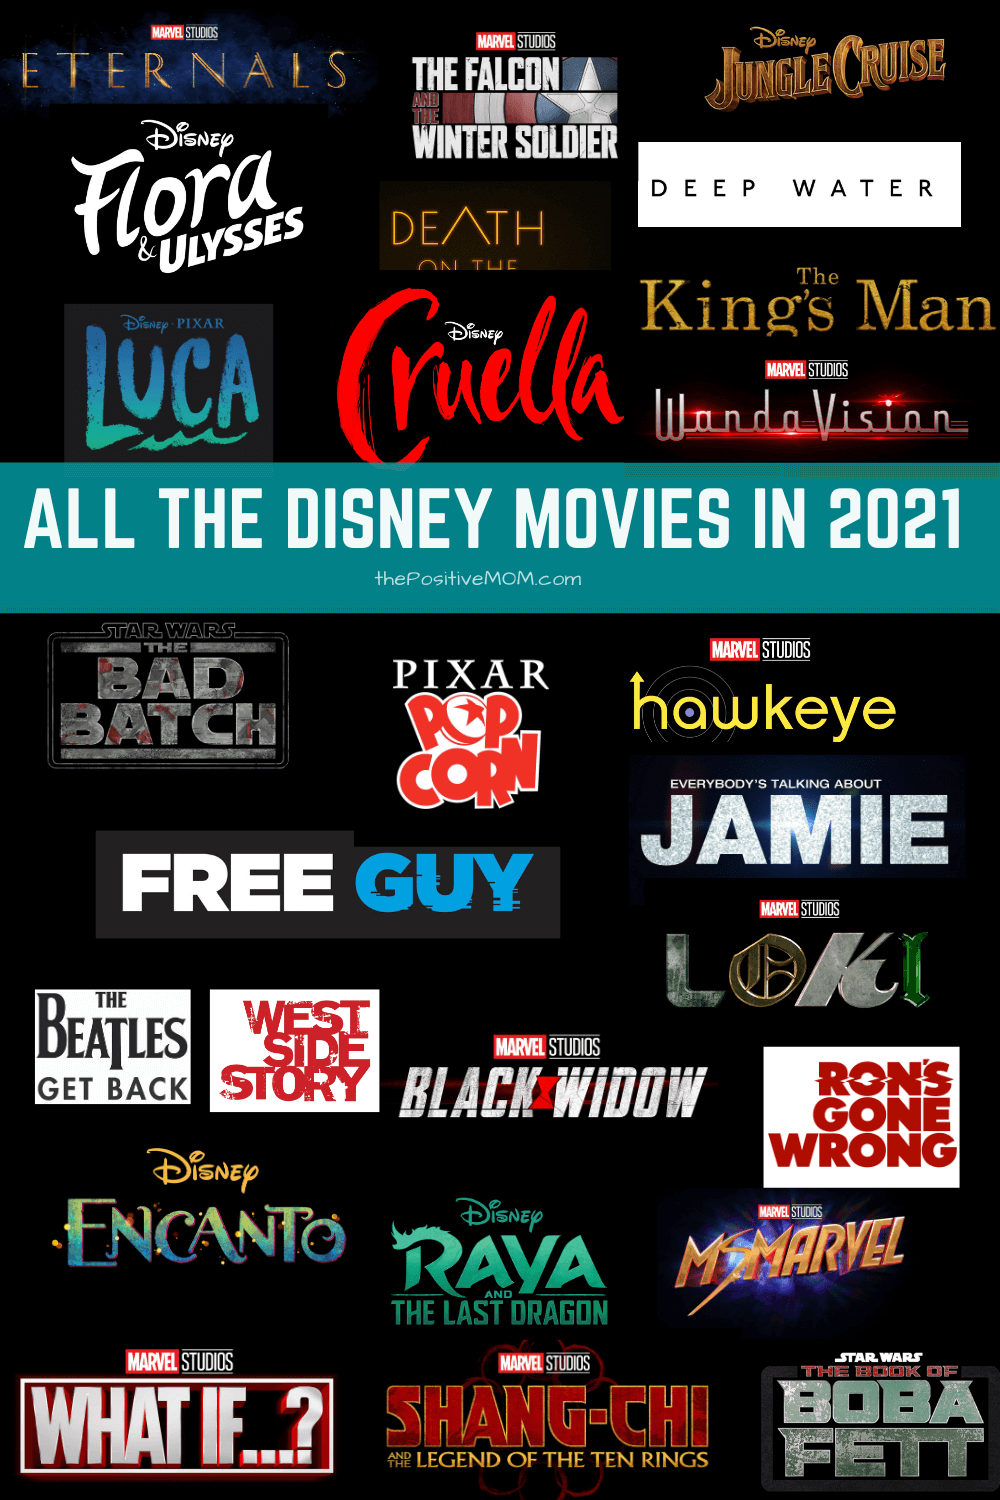 Halloween is coming and if you're stuck for a costume then read up on our guide to the best halloween costumes and costume sites online. All The Disney Movies Coming Out In 2021 And Beyond in 2021 | Movies coming out, Disney movies ...